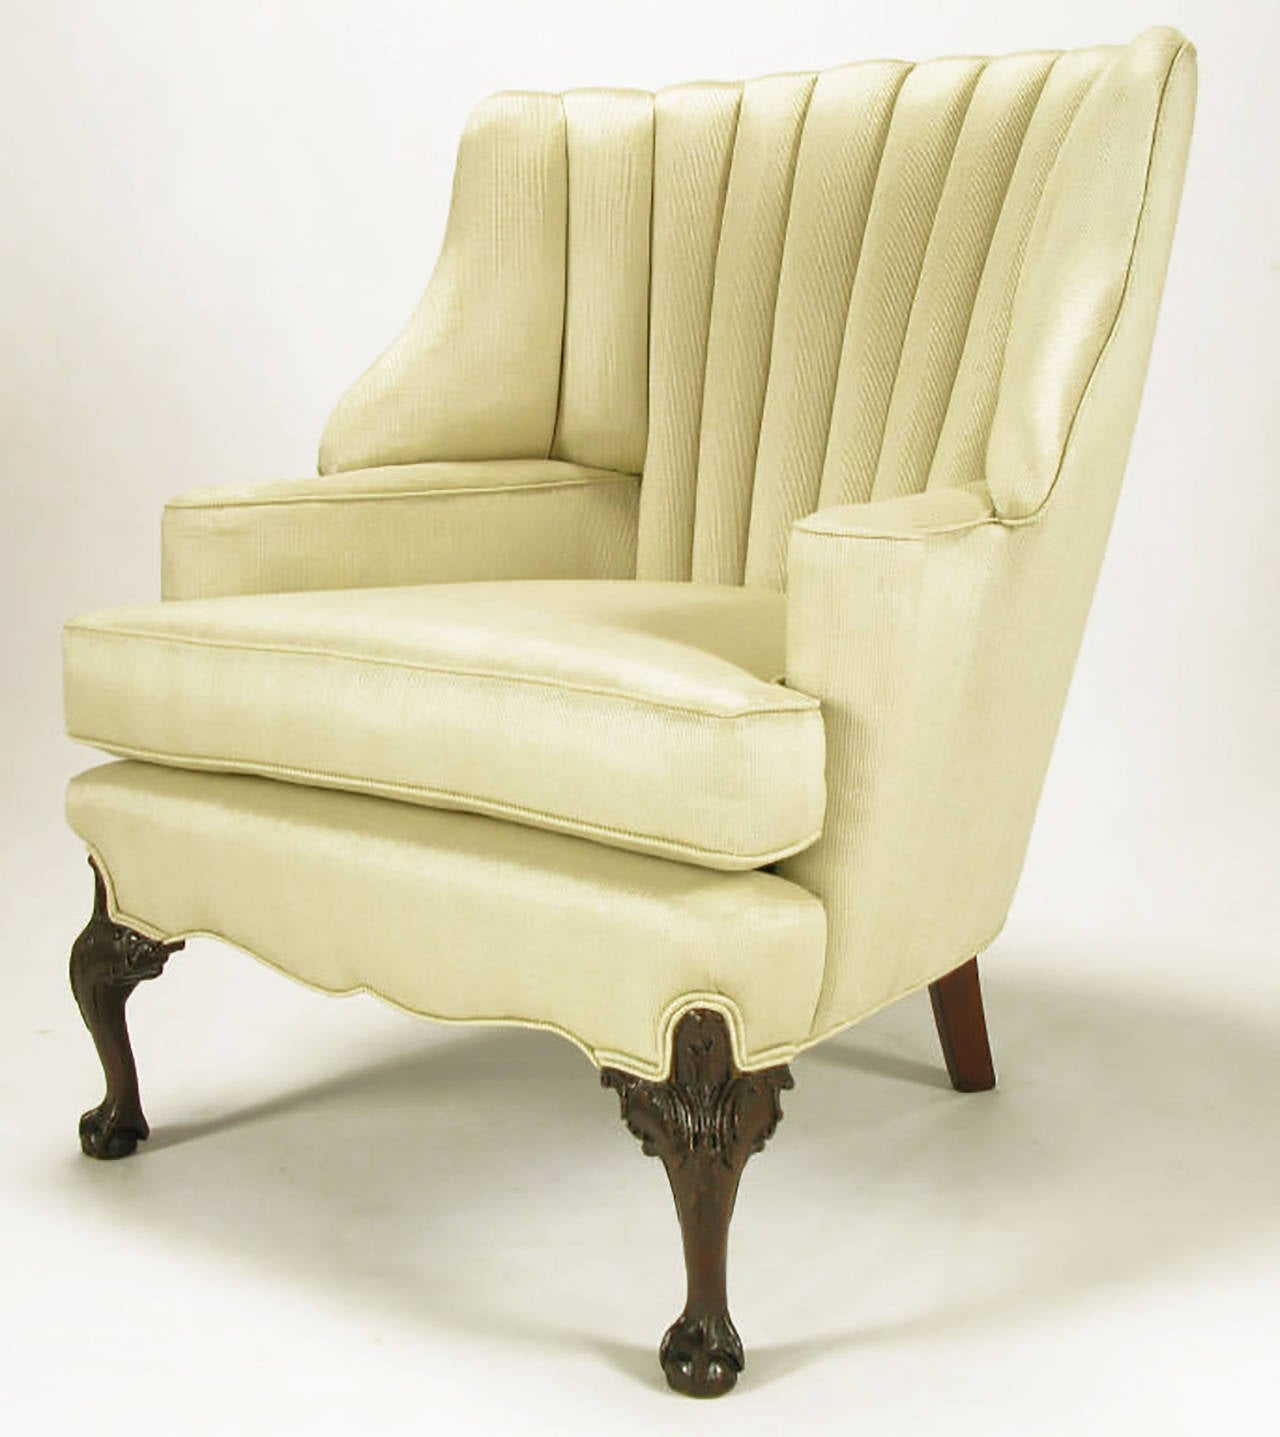 Restored barrel and channeled back Regency wide wing chair. New silk upholstery with tactile all vertical pin striping. Rolled end arms with sinuous front apron and heavily carved mahogany ball and claw front legs. Uncommon front roll to the deepset